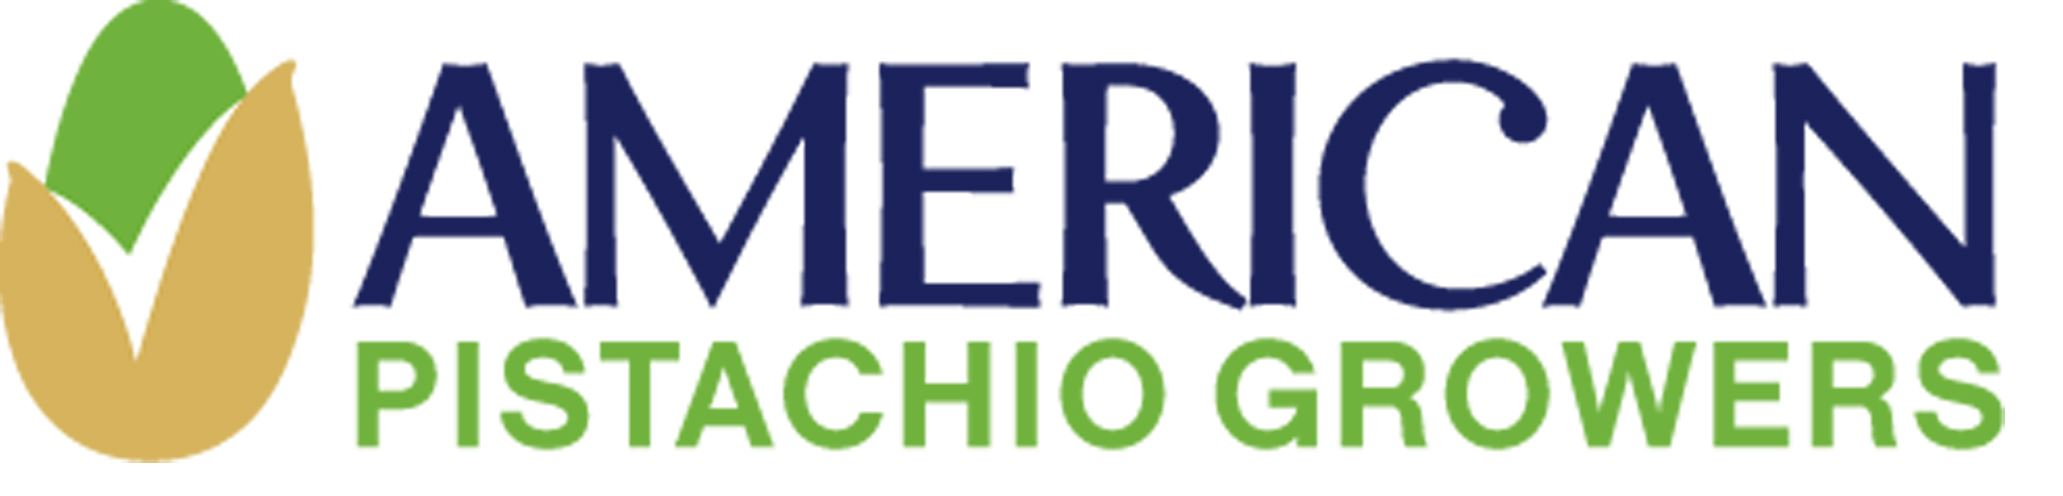 AmericanPistachioGrowers-Logo_for web copy